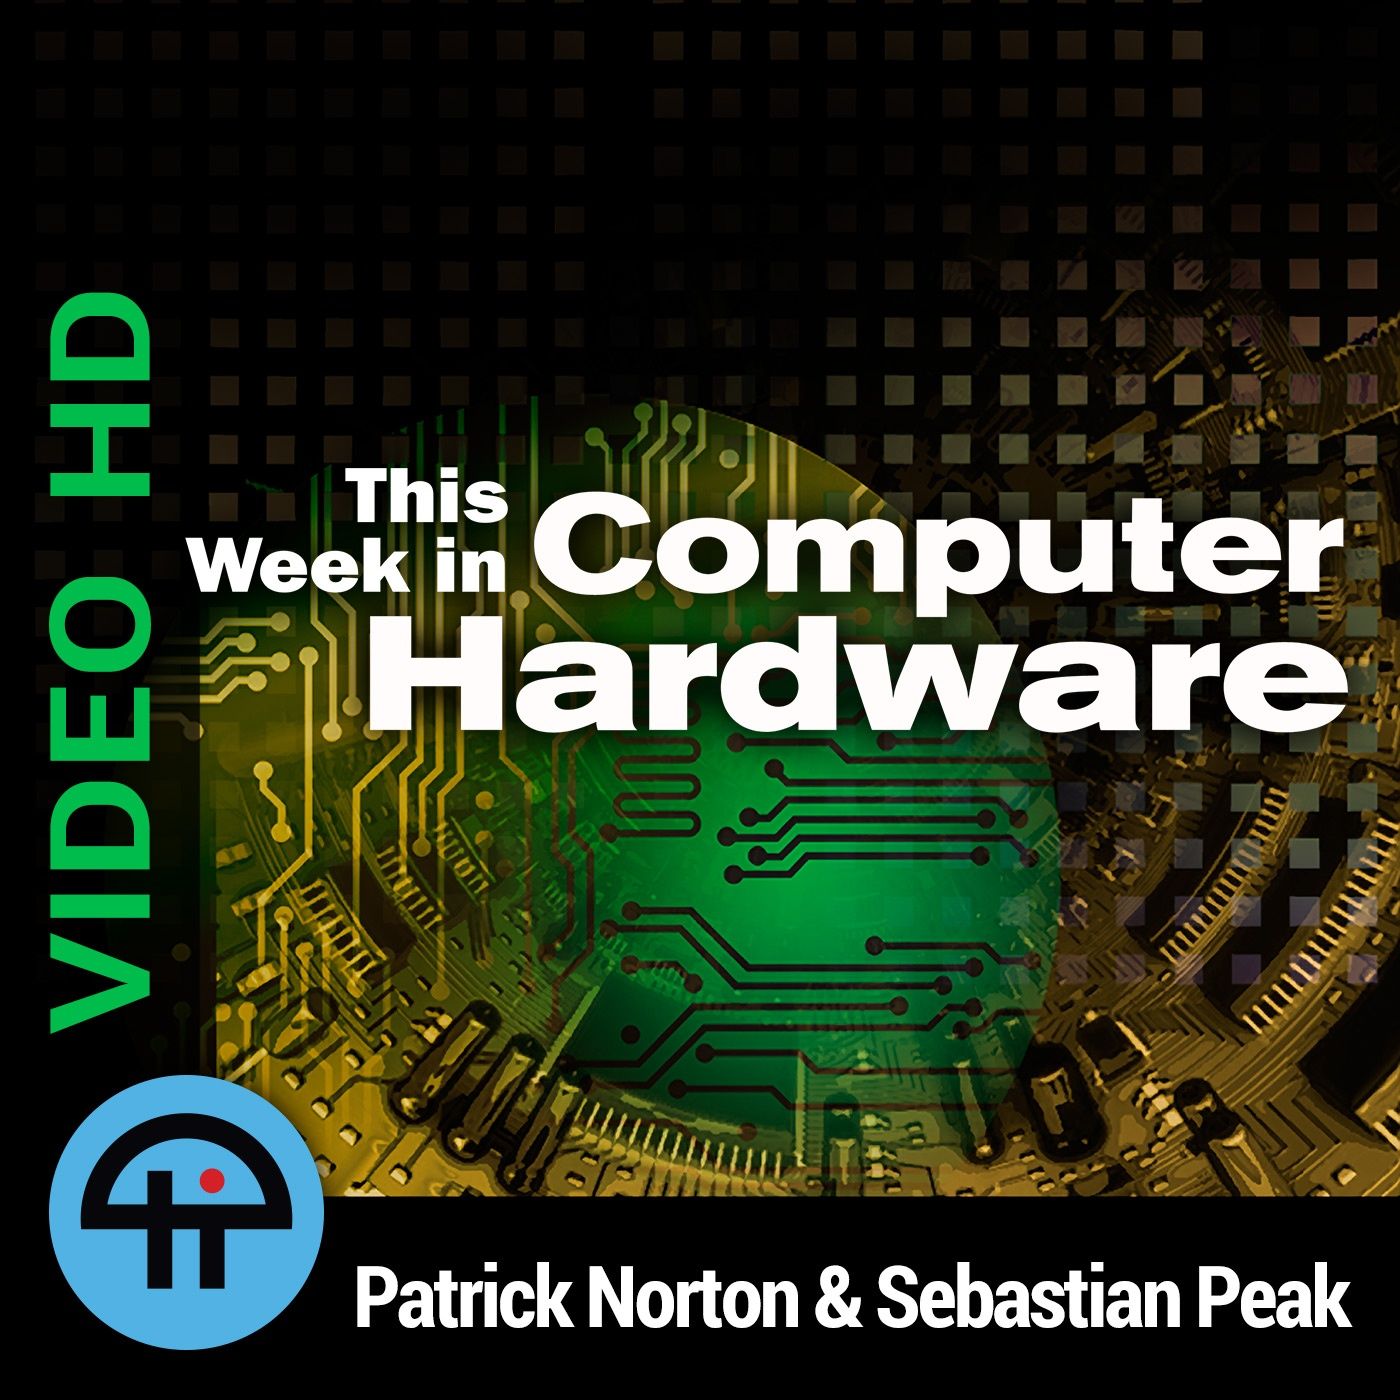 This Week in Computer Hardware (Video HD)